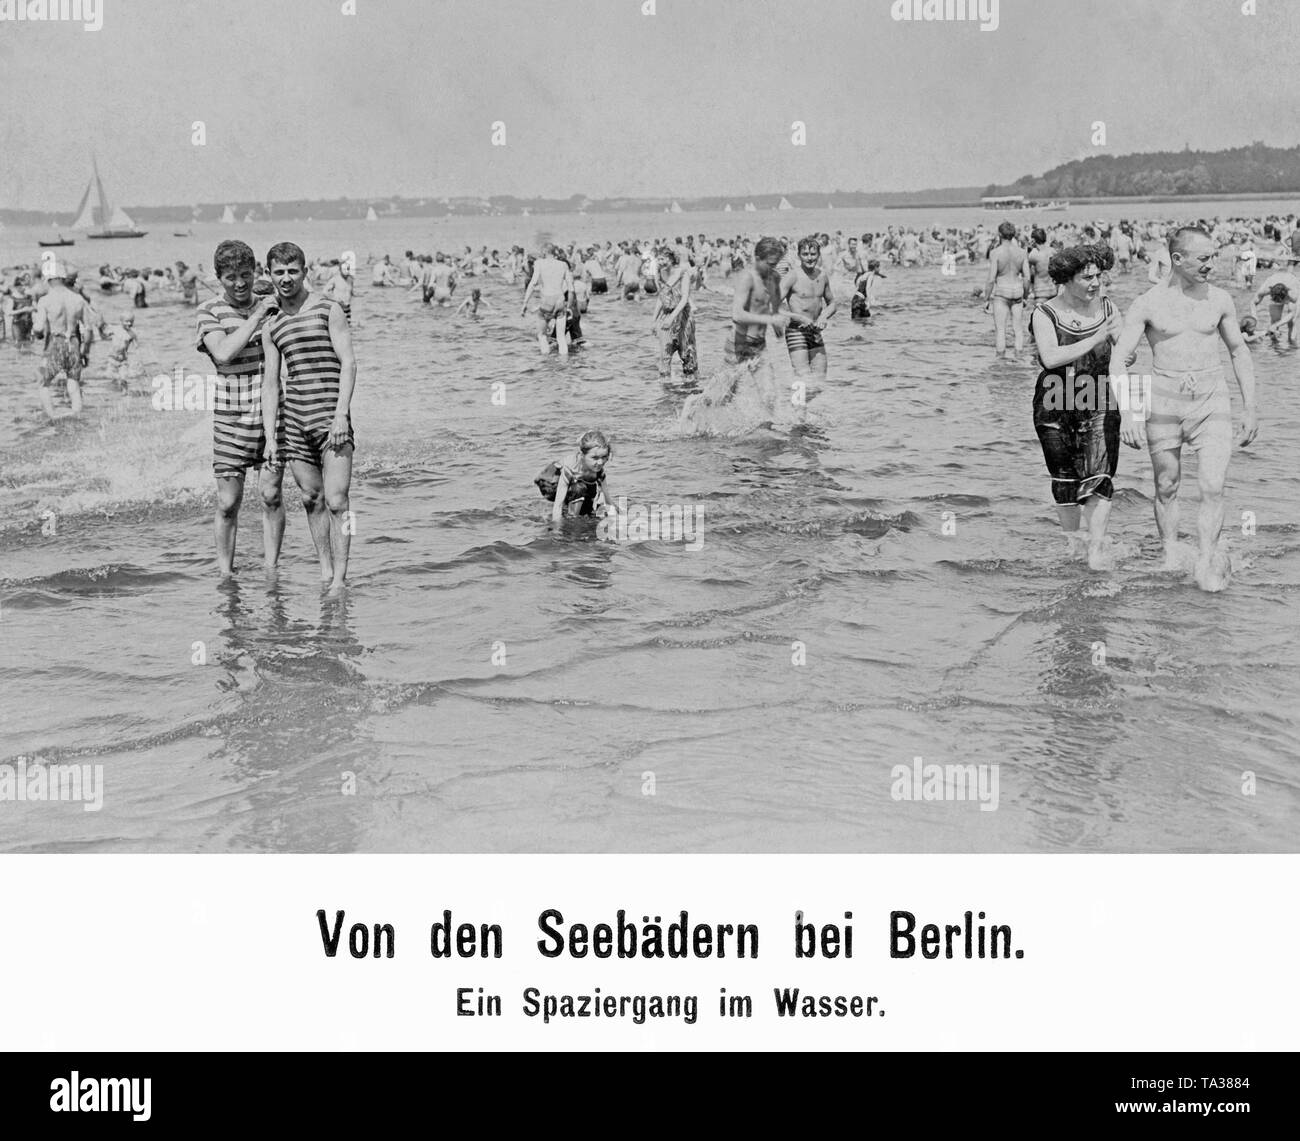 Bathers in a seaside resort at the lake Wannsee. - Stock Image